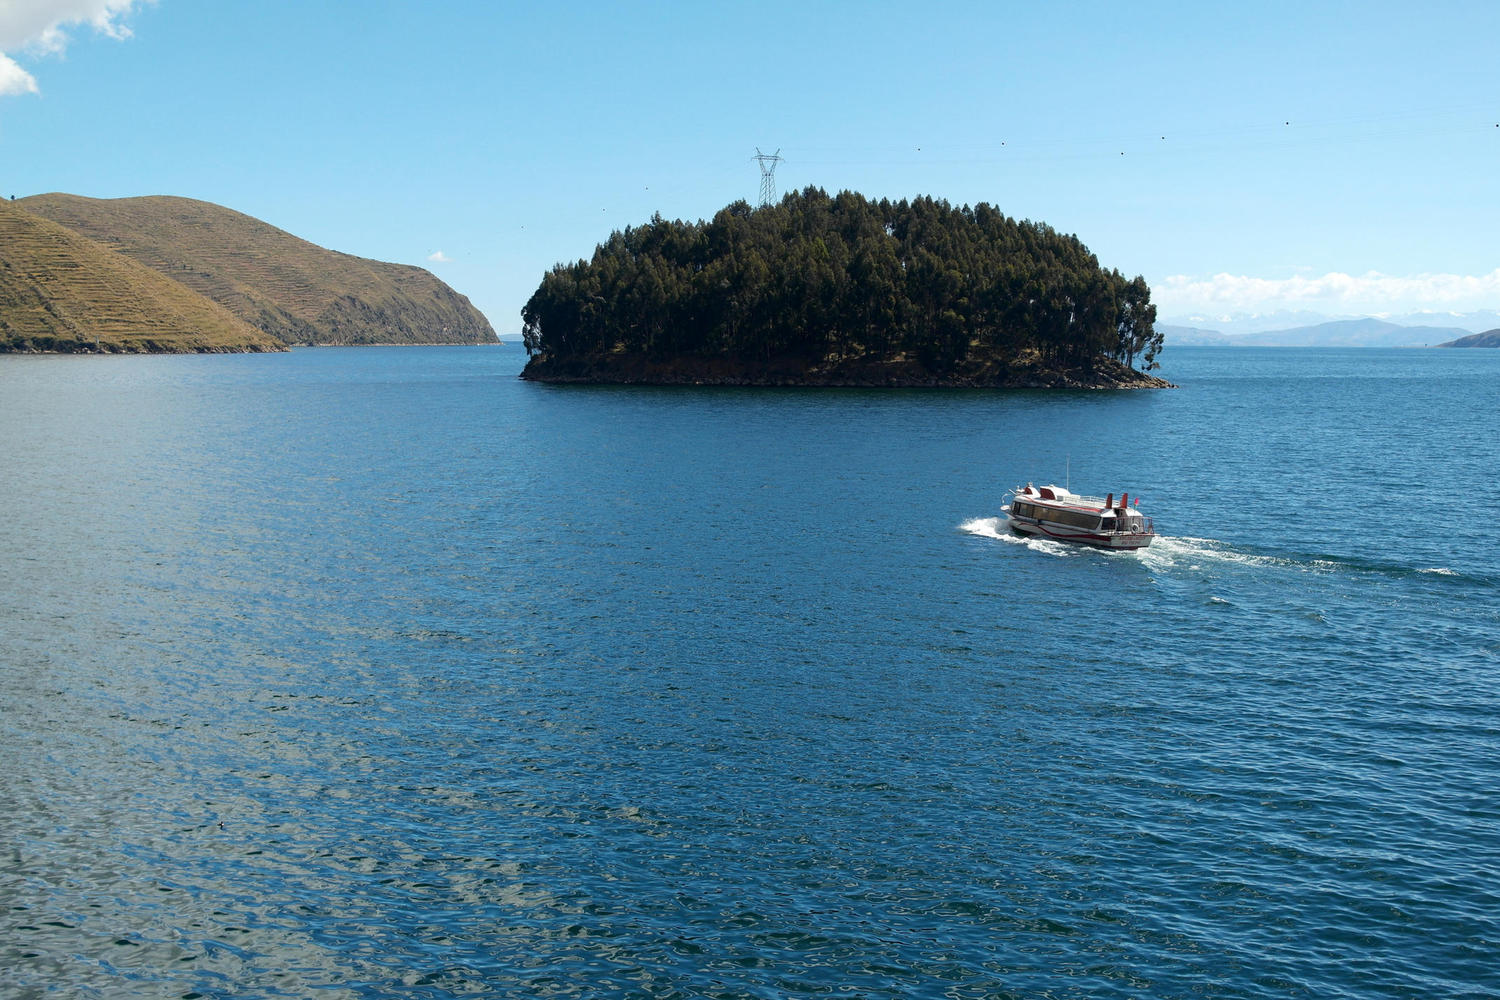 Crossing Lake Titicaca by boat from Bolivia